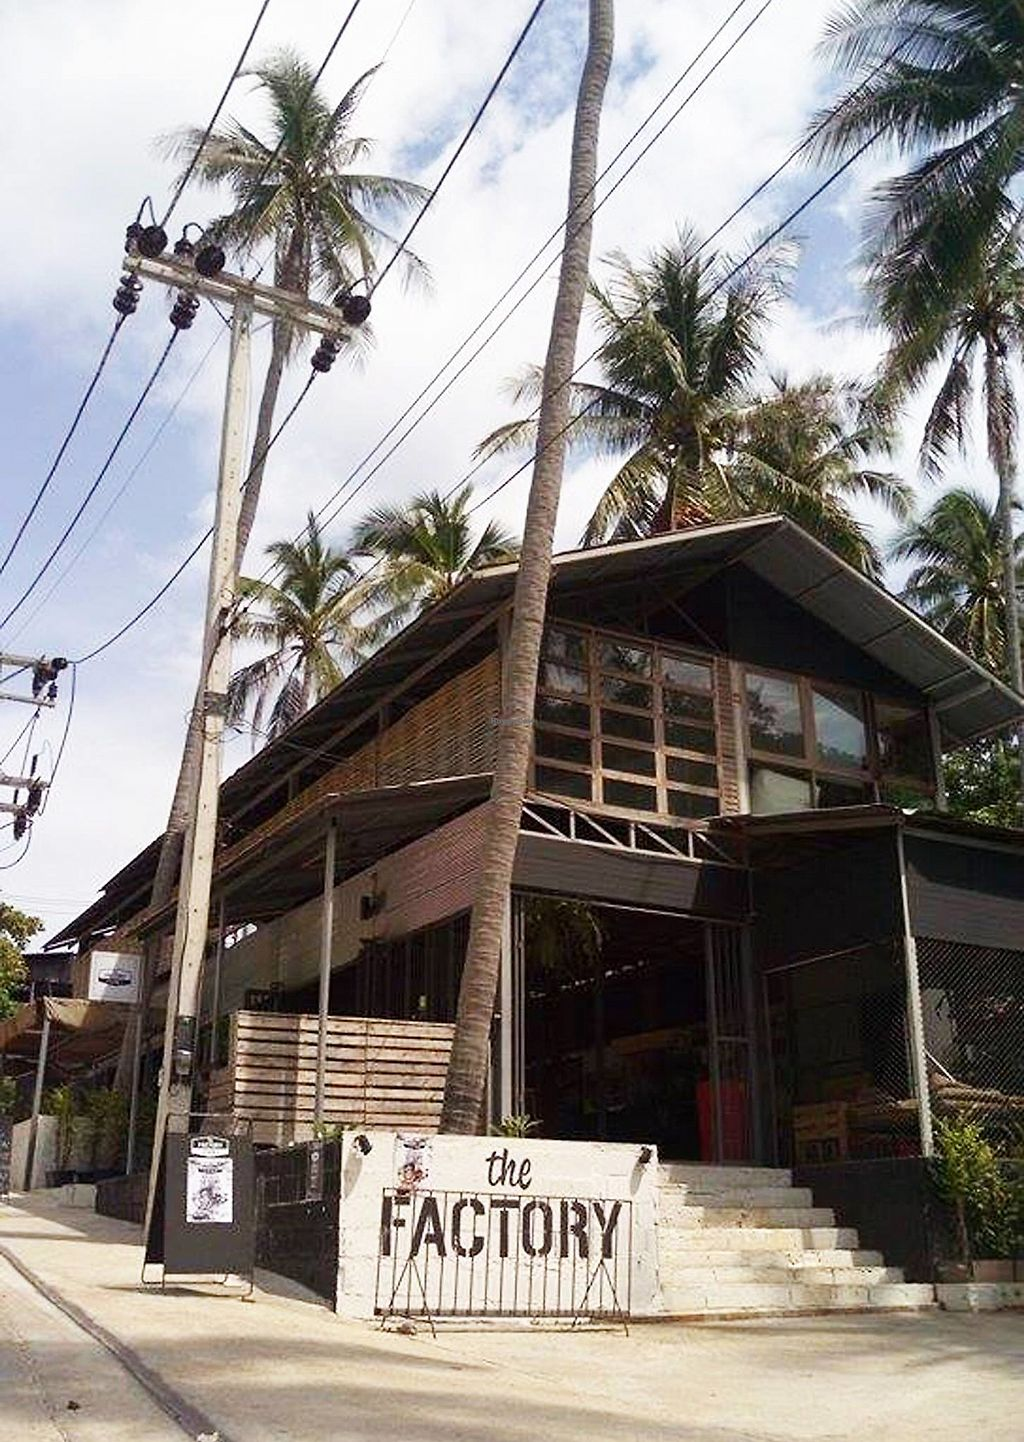 """Photo of The Factory Cafe  by <a href=""""/members/profile/AliceFerrer"""">AliceFerrer</a> <br/>The Factory Cafe <br/> October 5, 2017  - <a href='/contact/abuse/image/101030/311997'>Report</a>"""